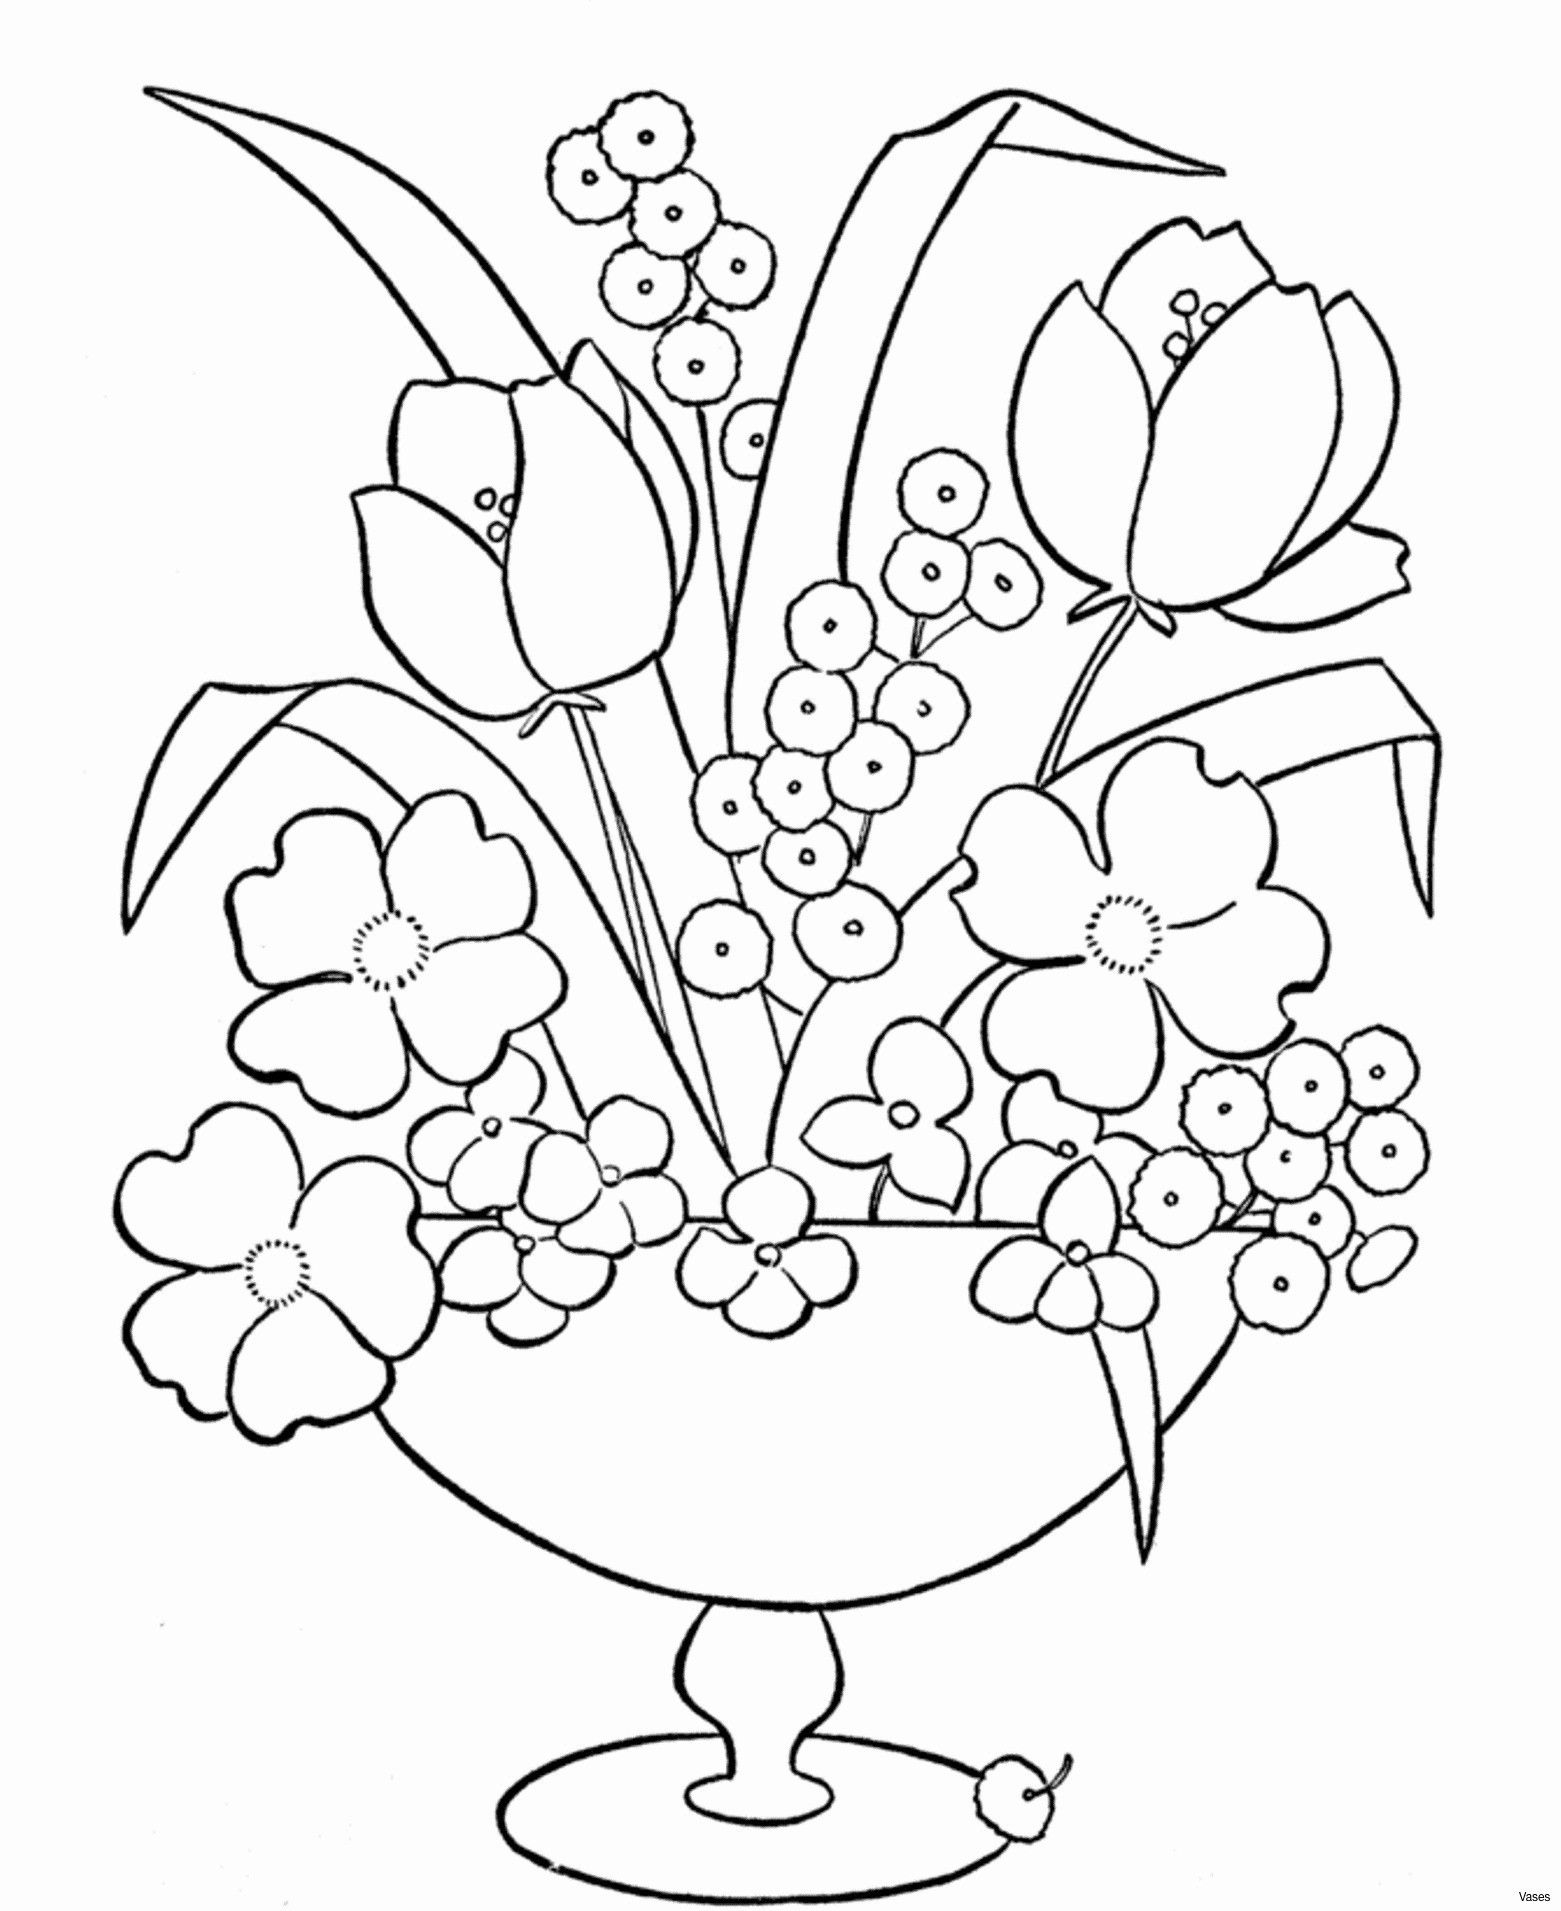 10 Coloring Pages Dinosaurs Coloring Pages Gymnastics Coloring Pages Kindergarten Colorin Fairy Coloring Pages Spring Coloring Pages Designs Coloring Books